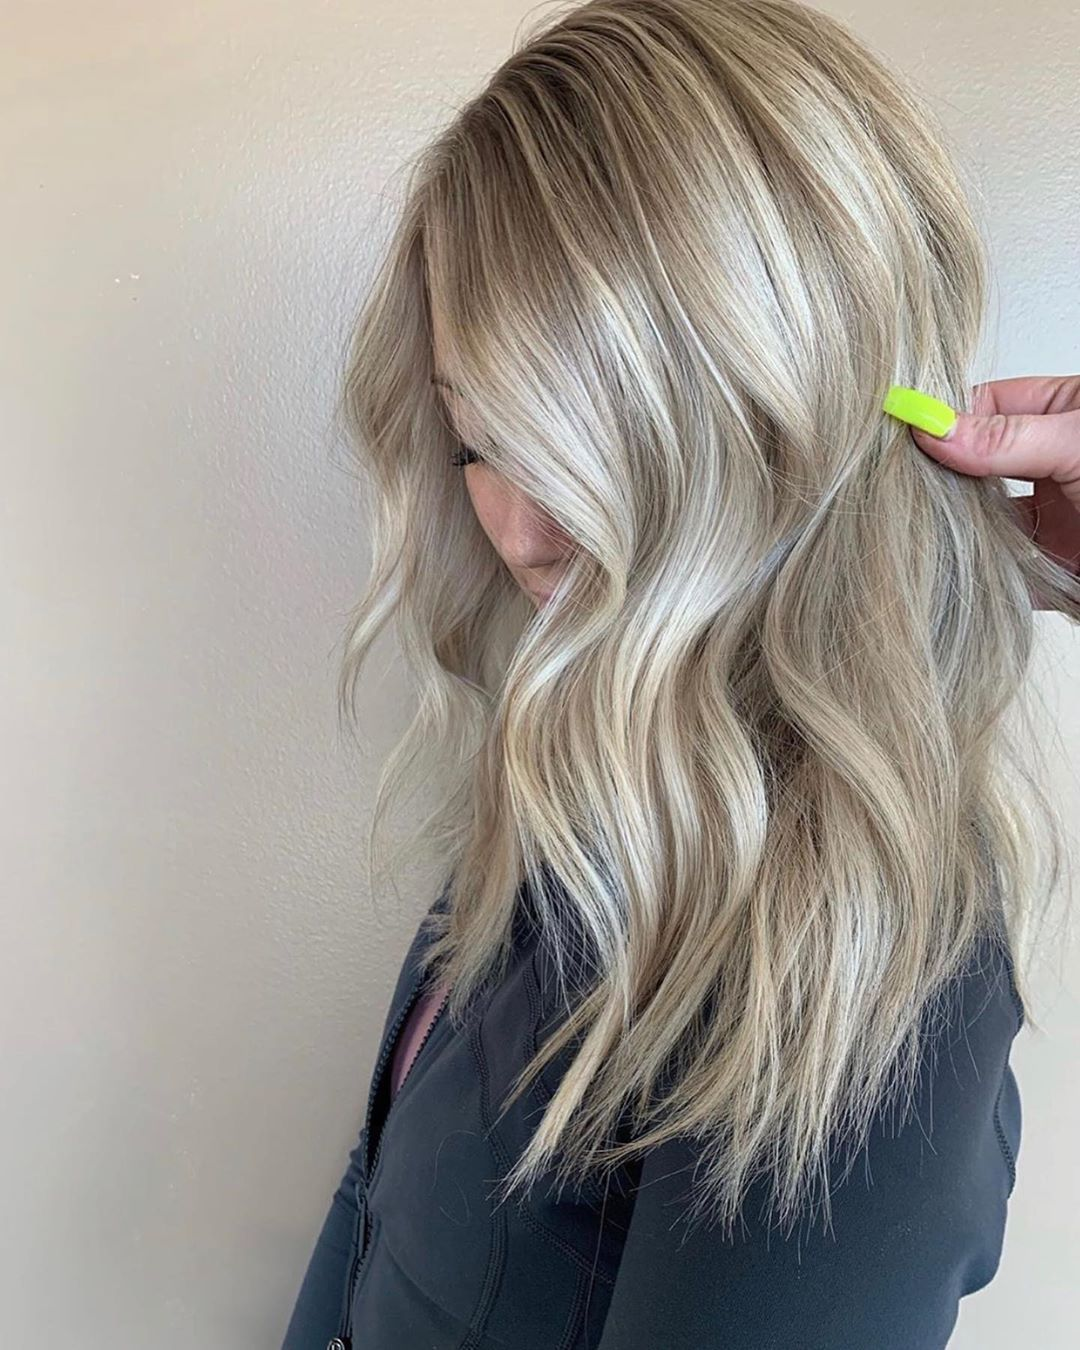 How To Do Quick Natural Wavy Hair In 2020 Natural Wavy Hair Hair Styles Colored Hair Tips